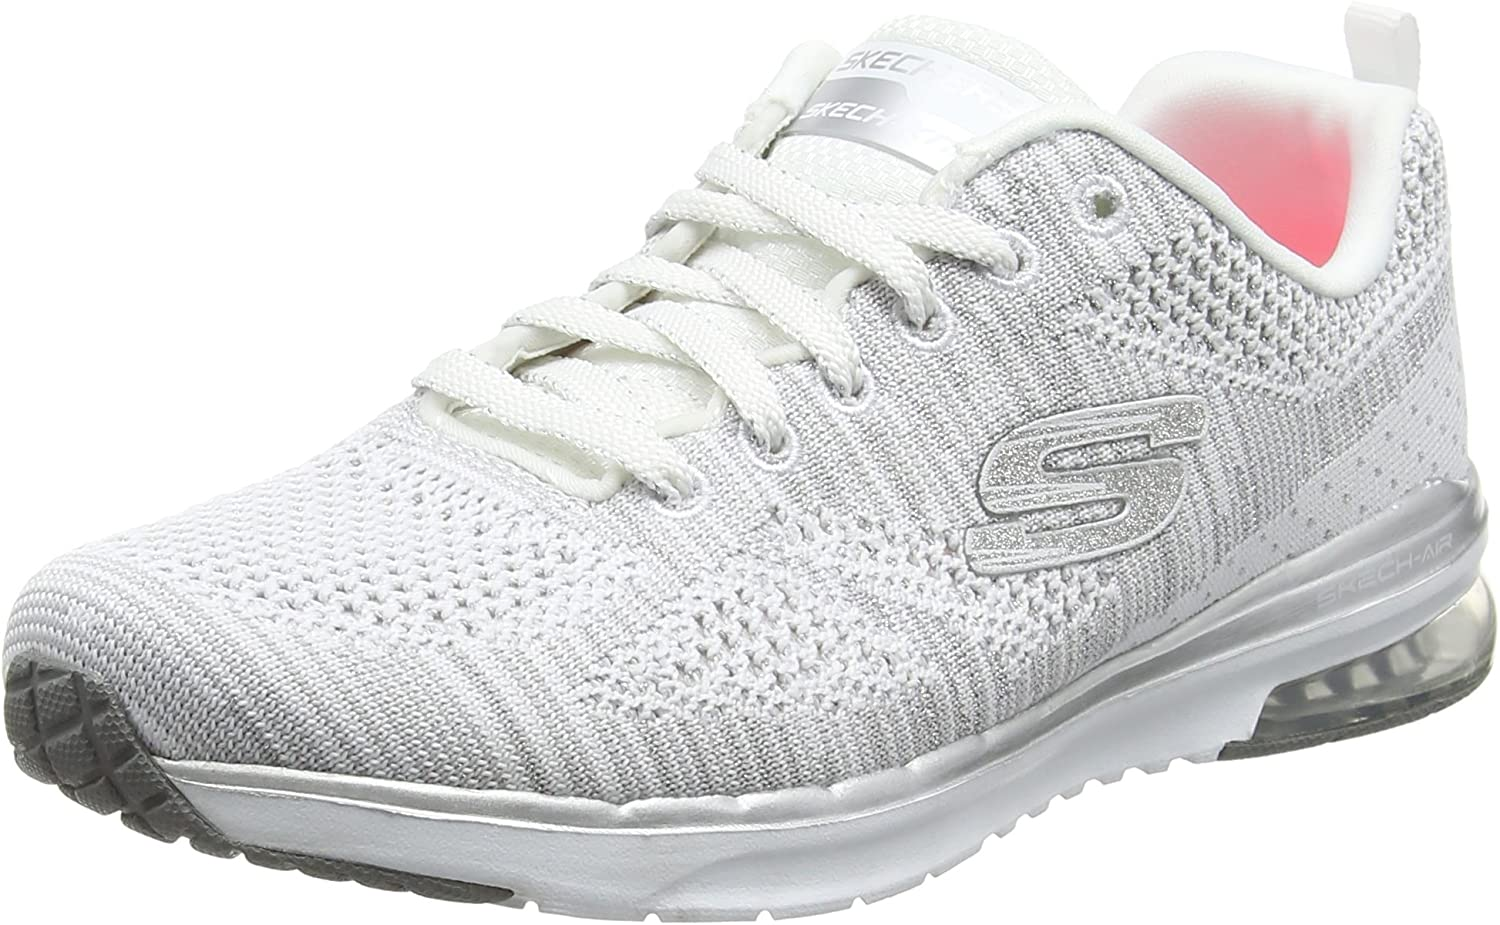 Skechers Air Infinity Stand Out, Women